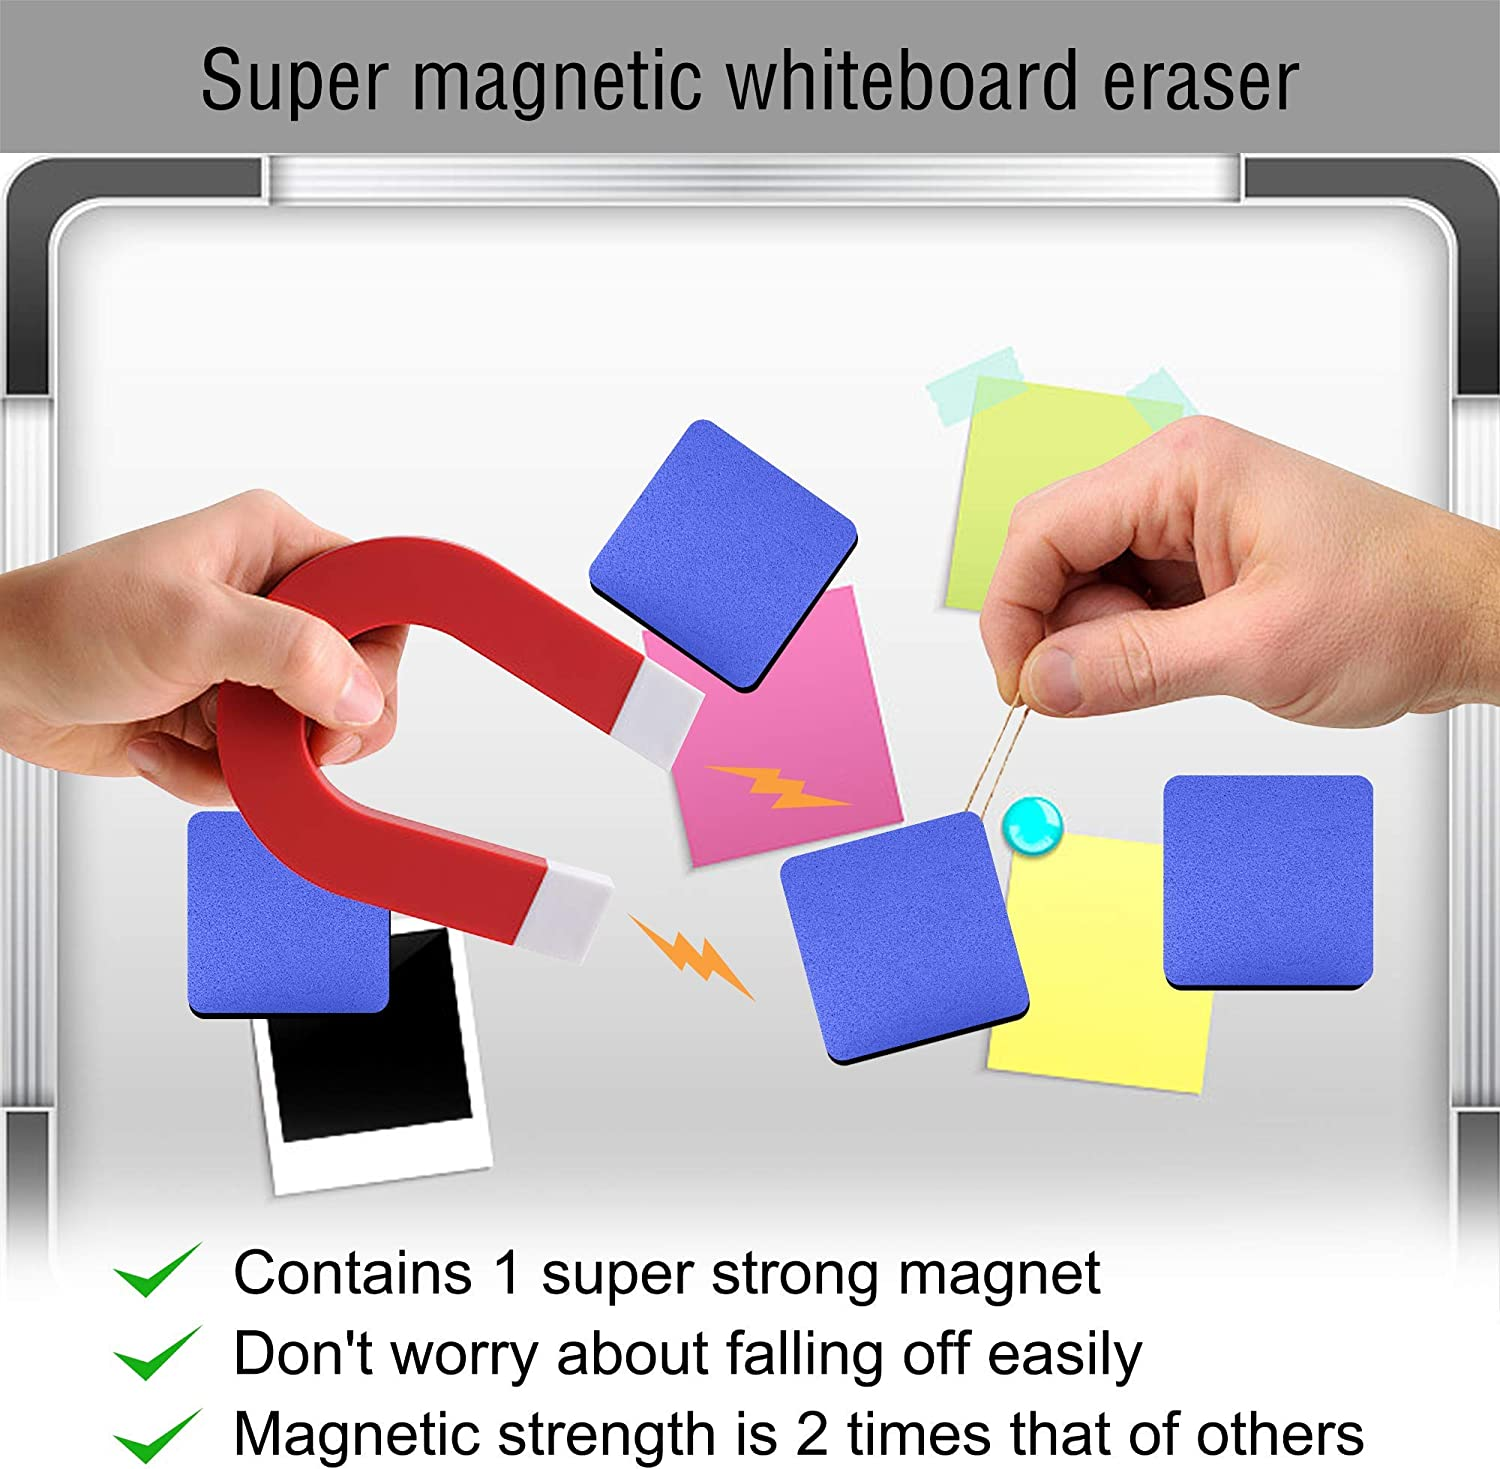 Mini Dry Erase Erasers Home and Office IHPUKIDI 24 Pack Magnetic Whiteboard Dry Erasers Chalkboard Cleaner Wiper for kids and Classroom Teacher Supplies